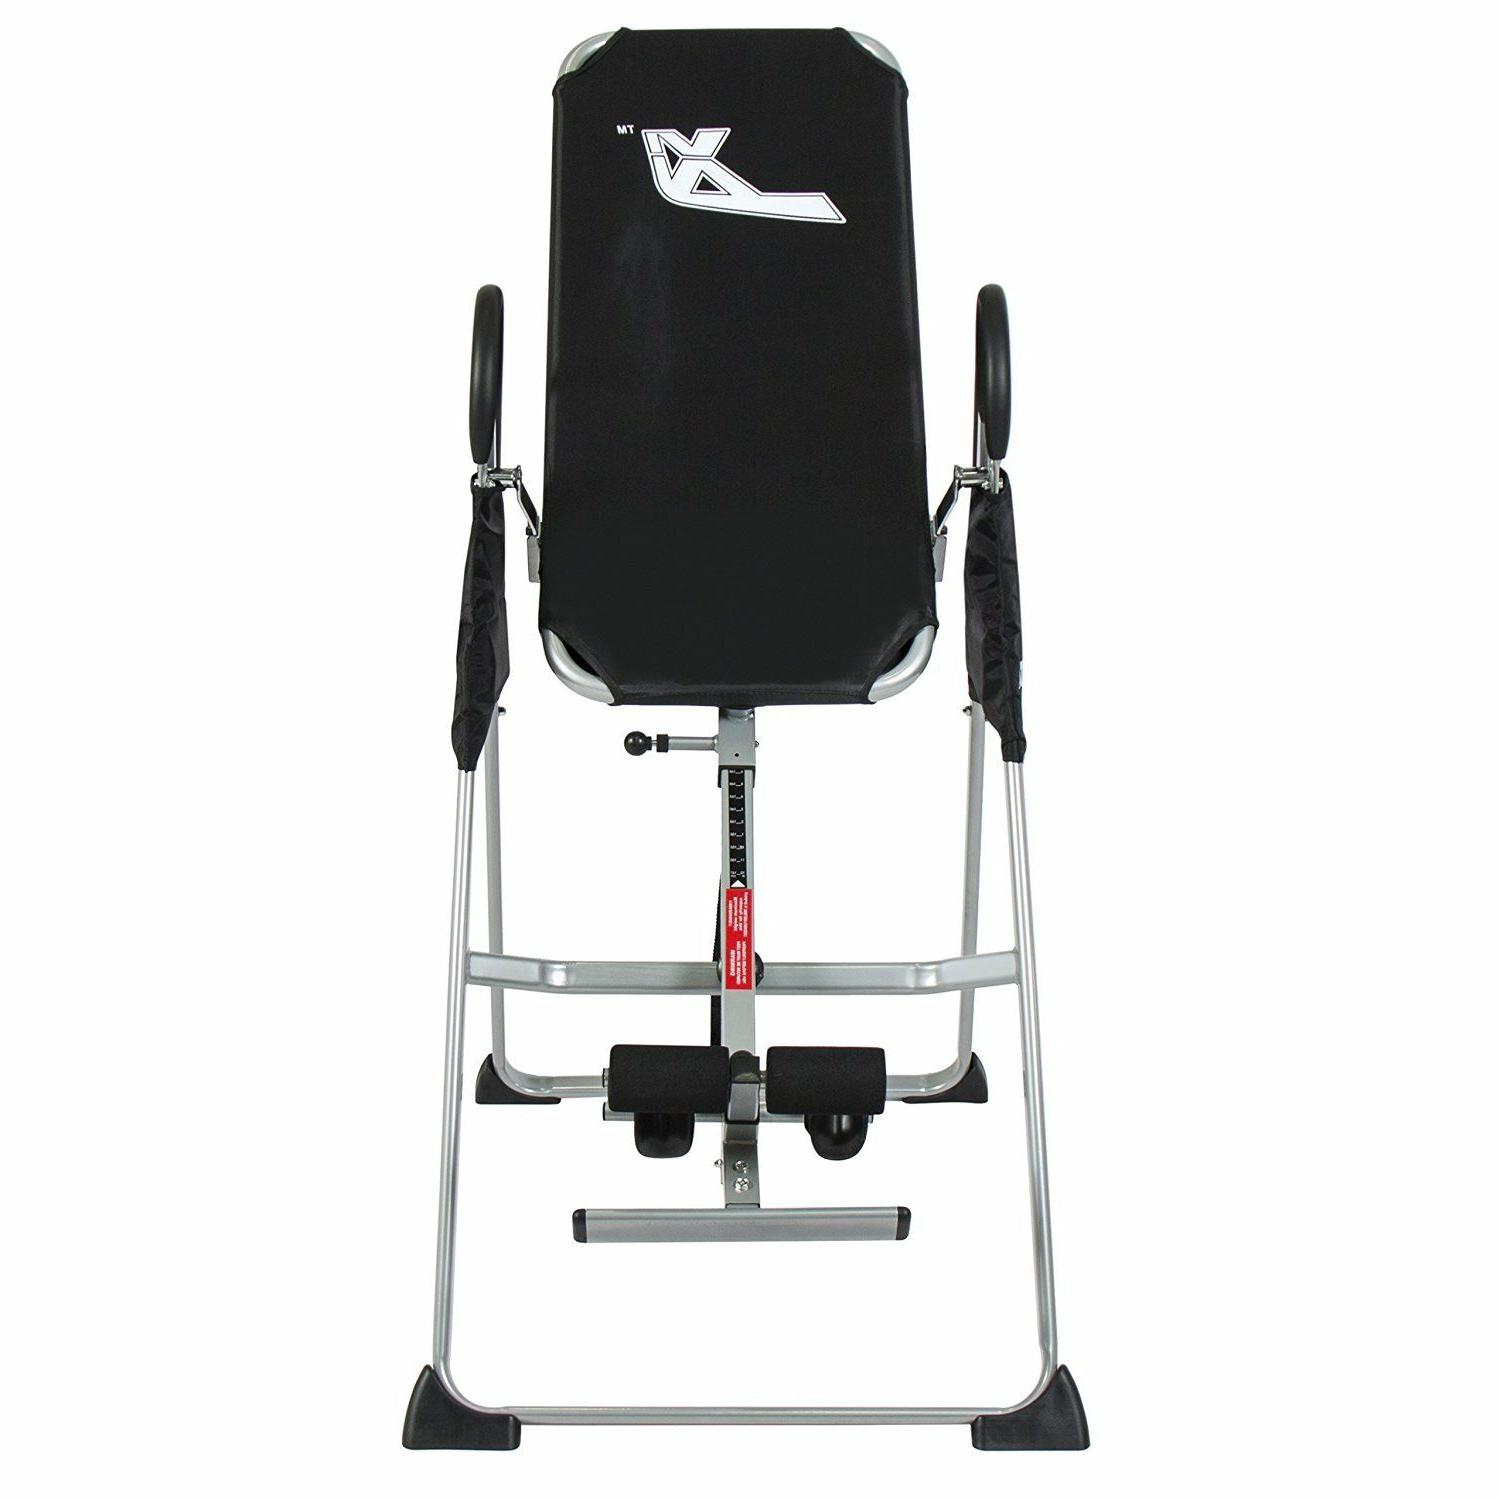 New Inversion Table Relief